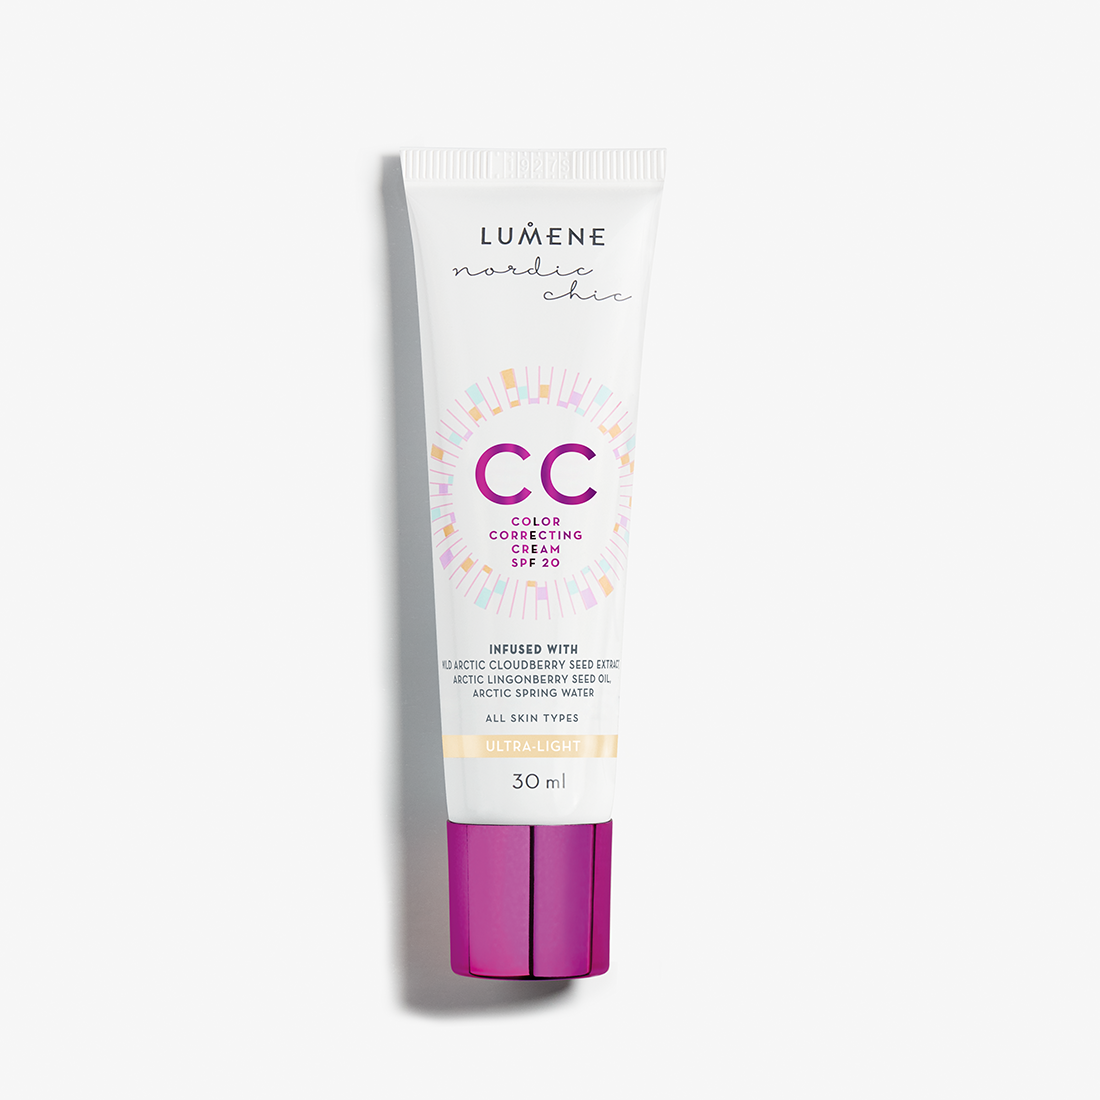 ac0de812057 CC Color Correcting Cream | www.lumene.com